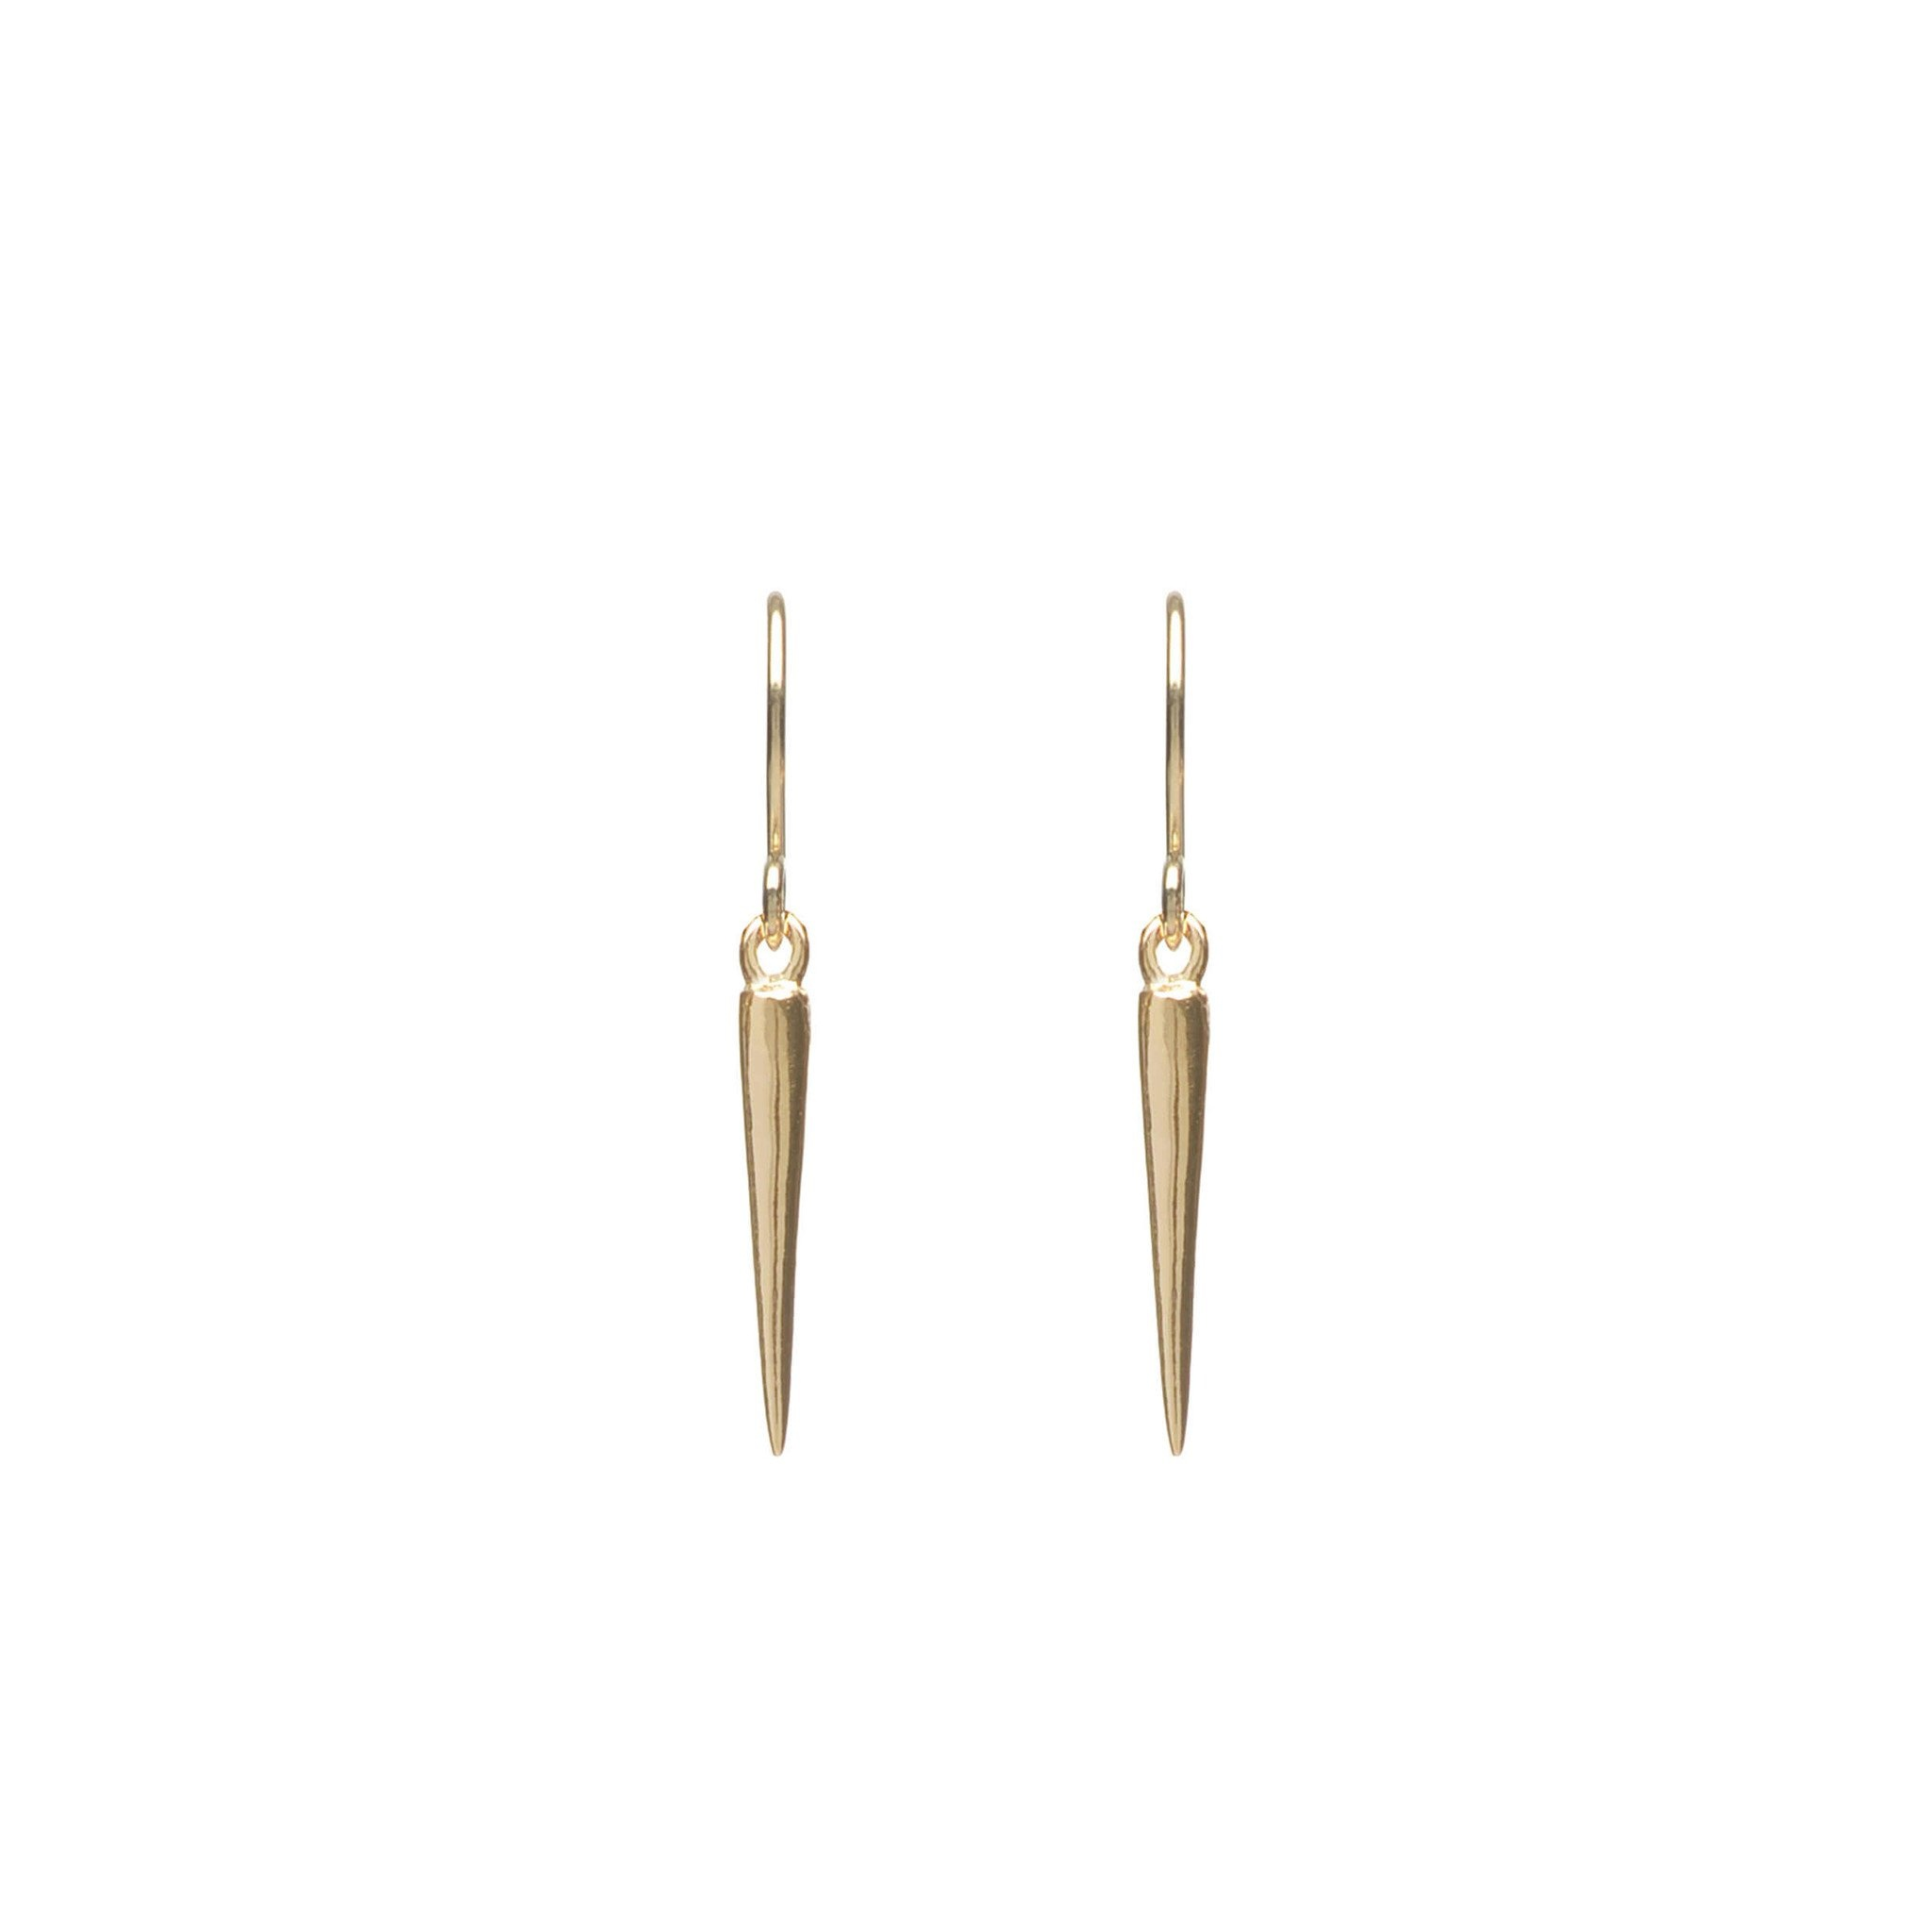 Hook earrings with spike pendant Goldplated